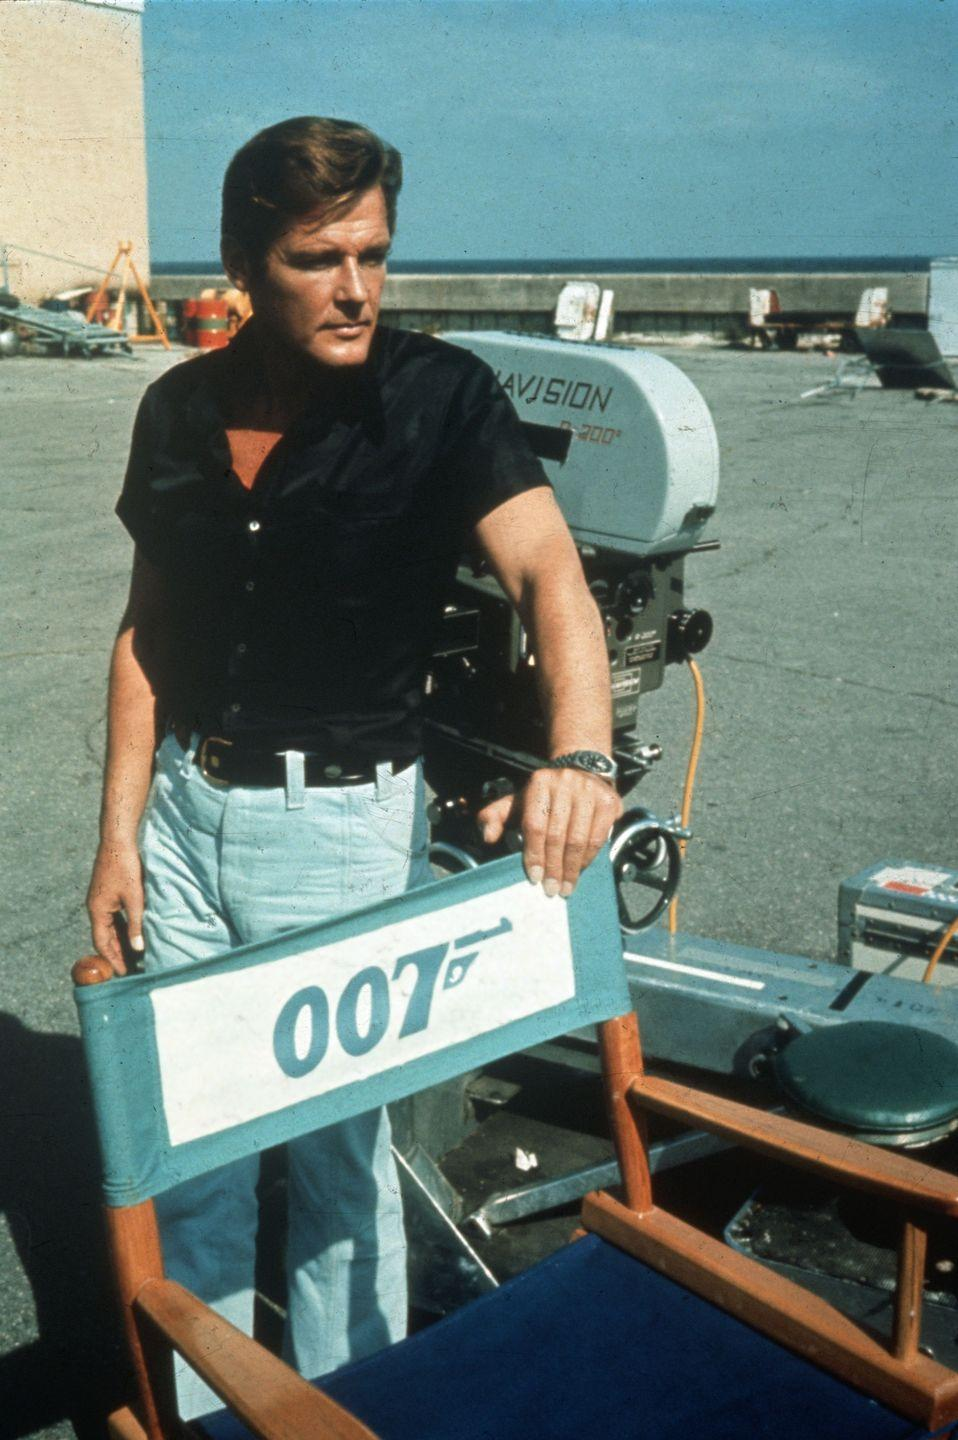 <p>Roger Moore, who portrayed James Bond in <em>Live and Let Die</em>, is seen on set. It was the eighth James Bond film for the franchise.</p>